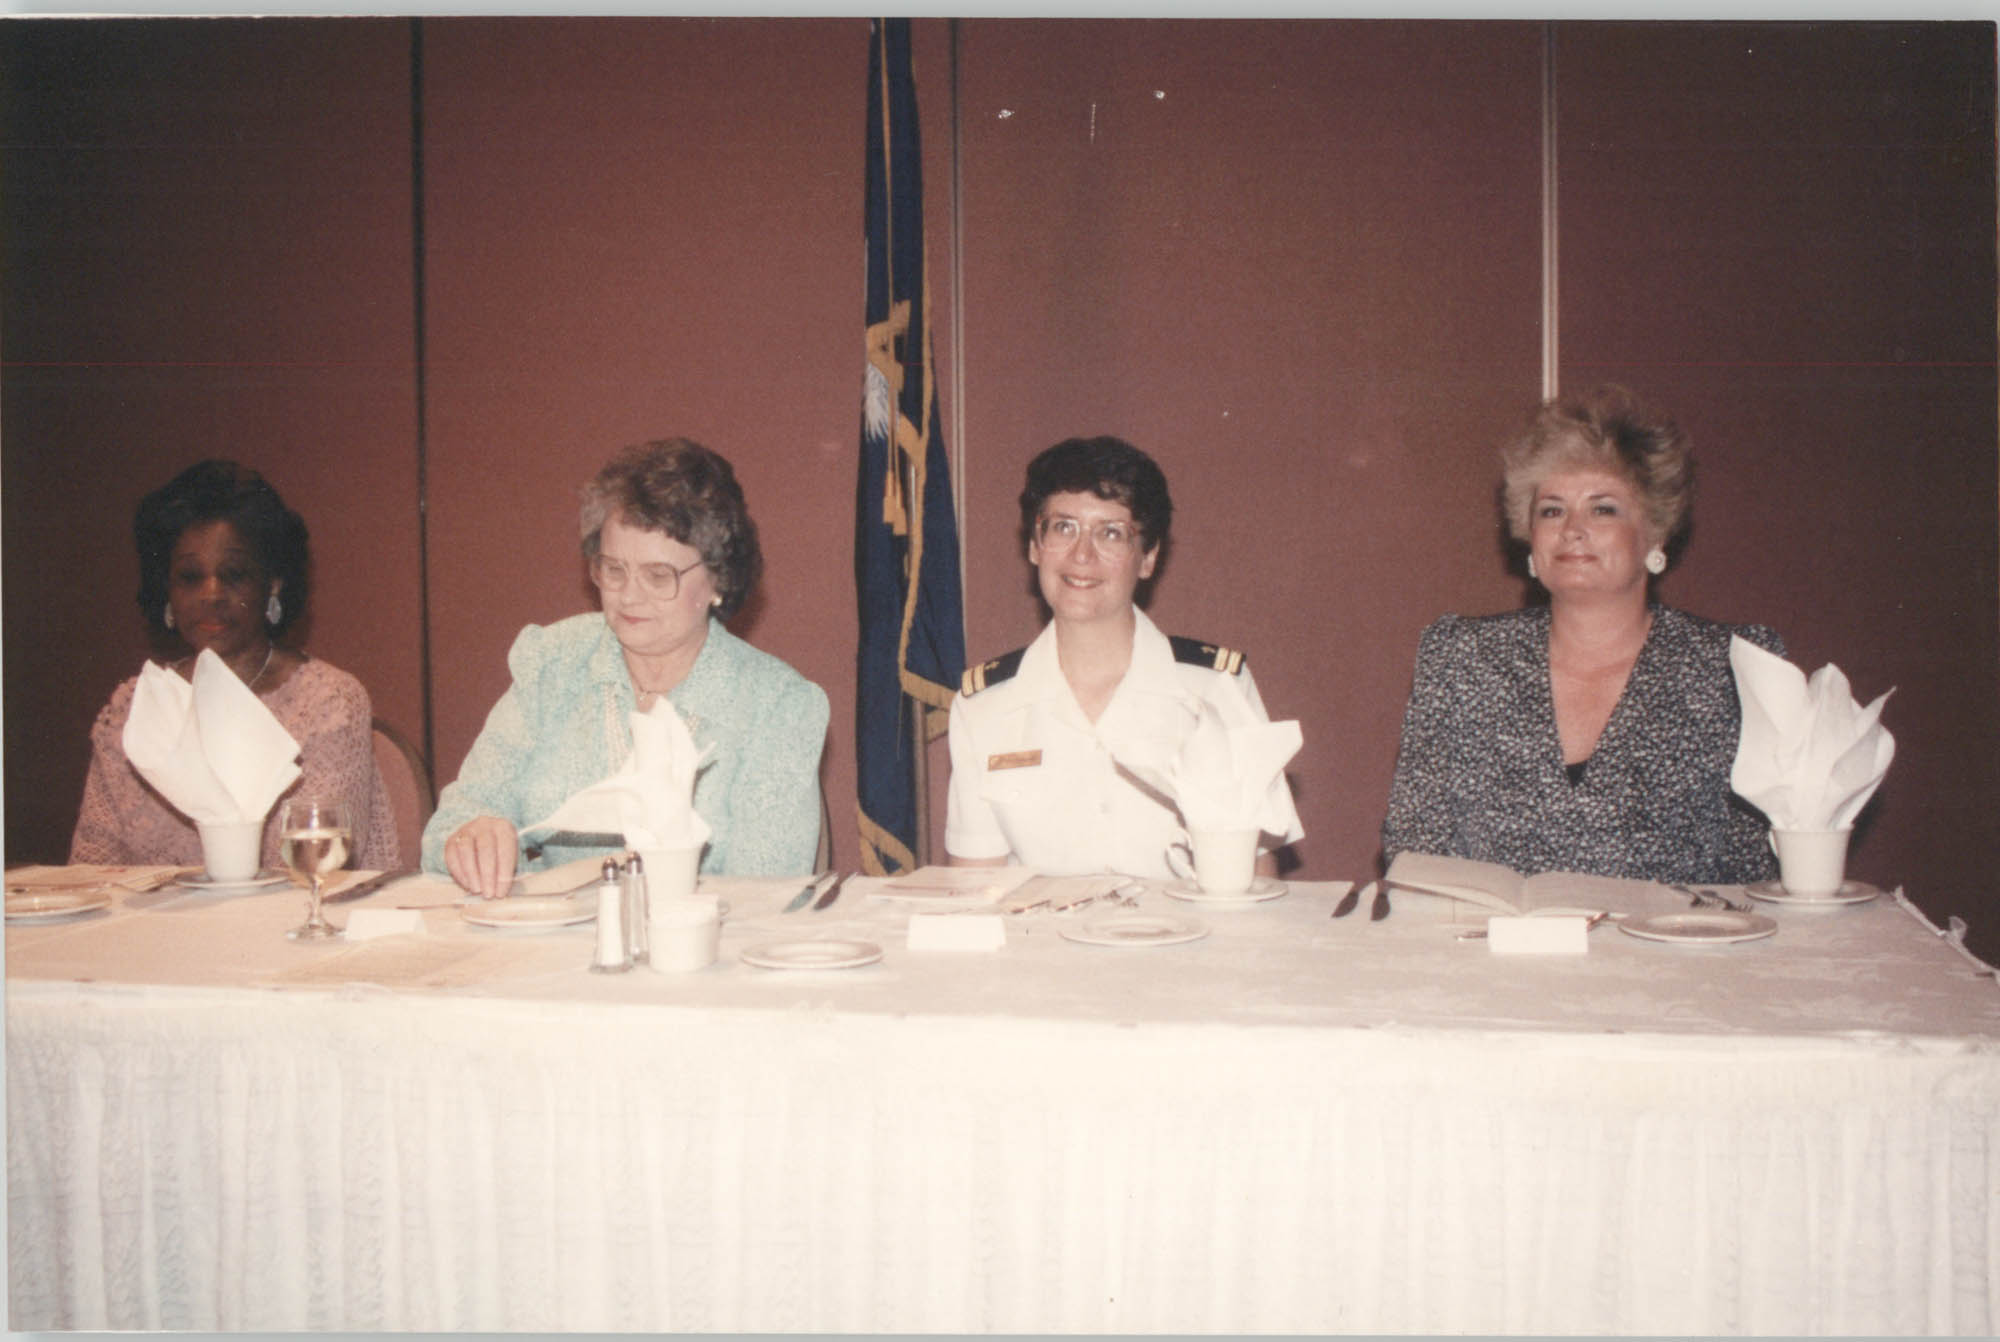 Photograph of Four Women